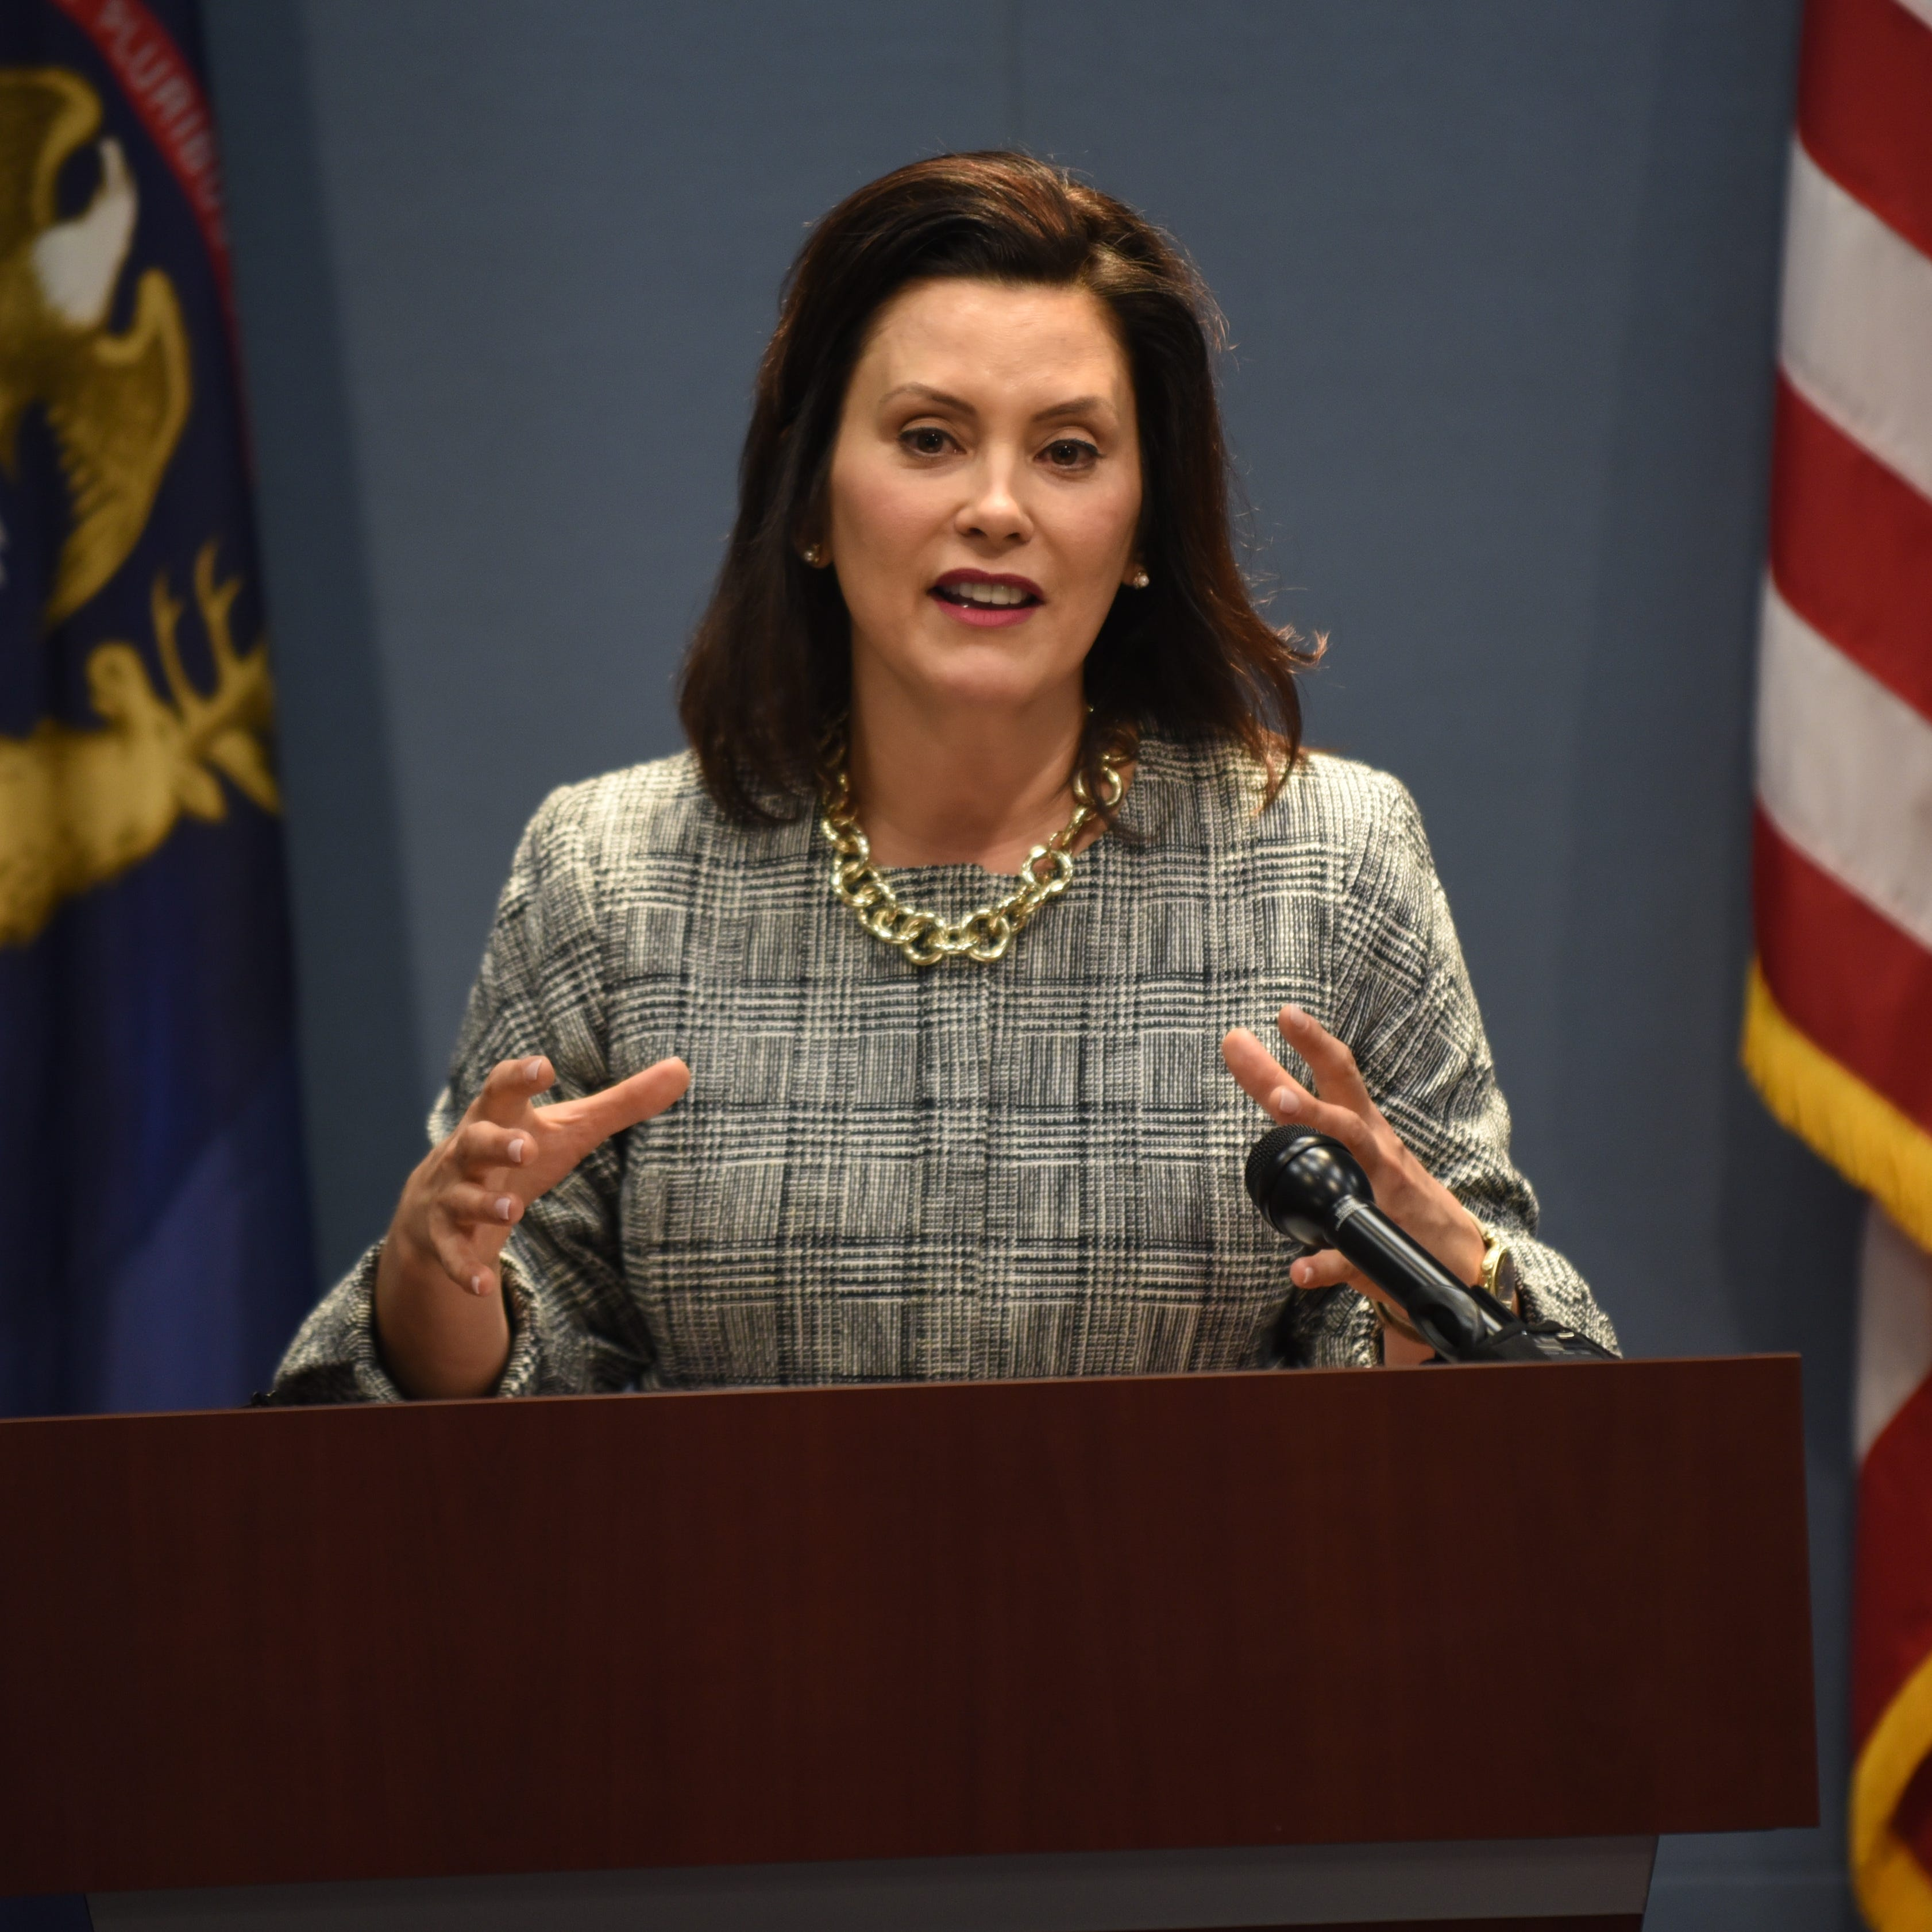 Whitmer to deliver first State of the State address in February